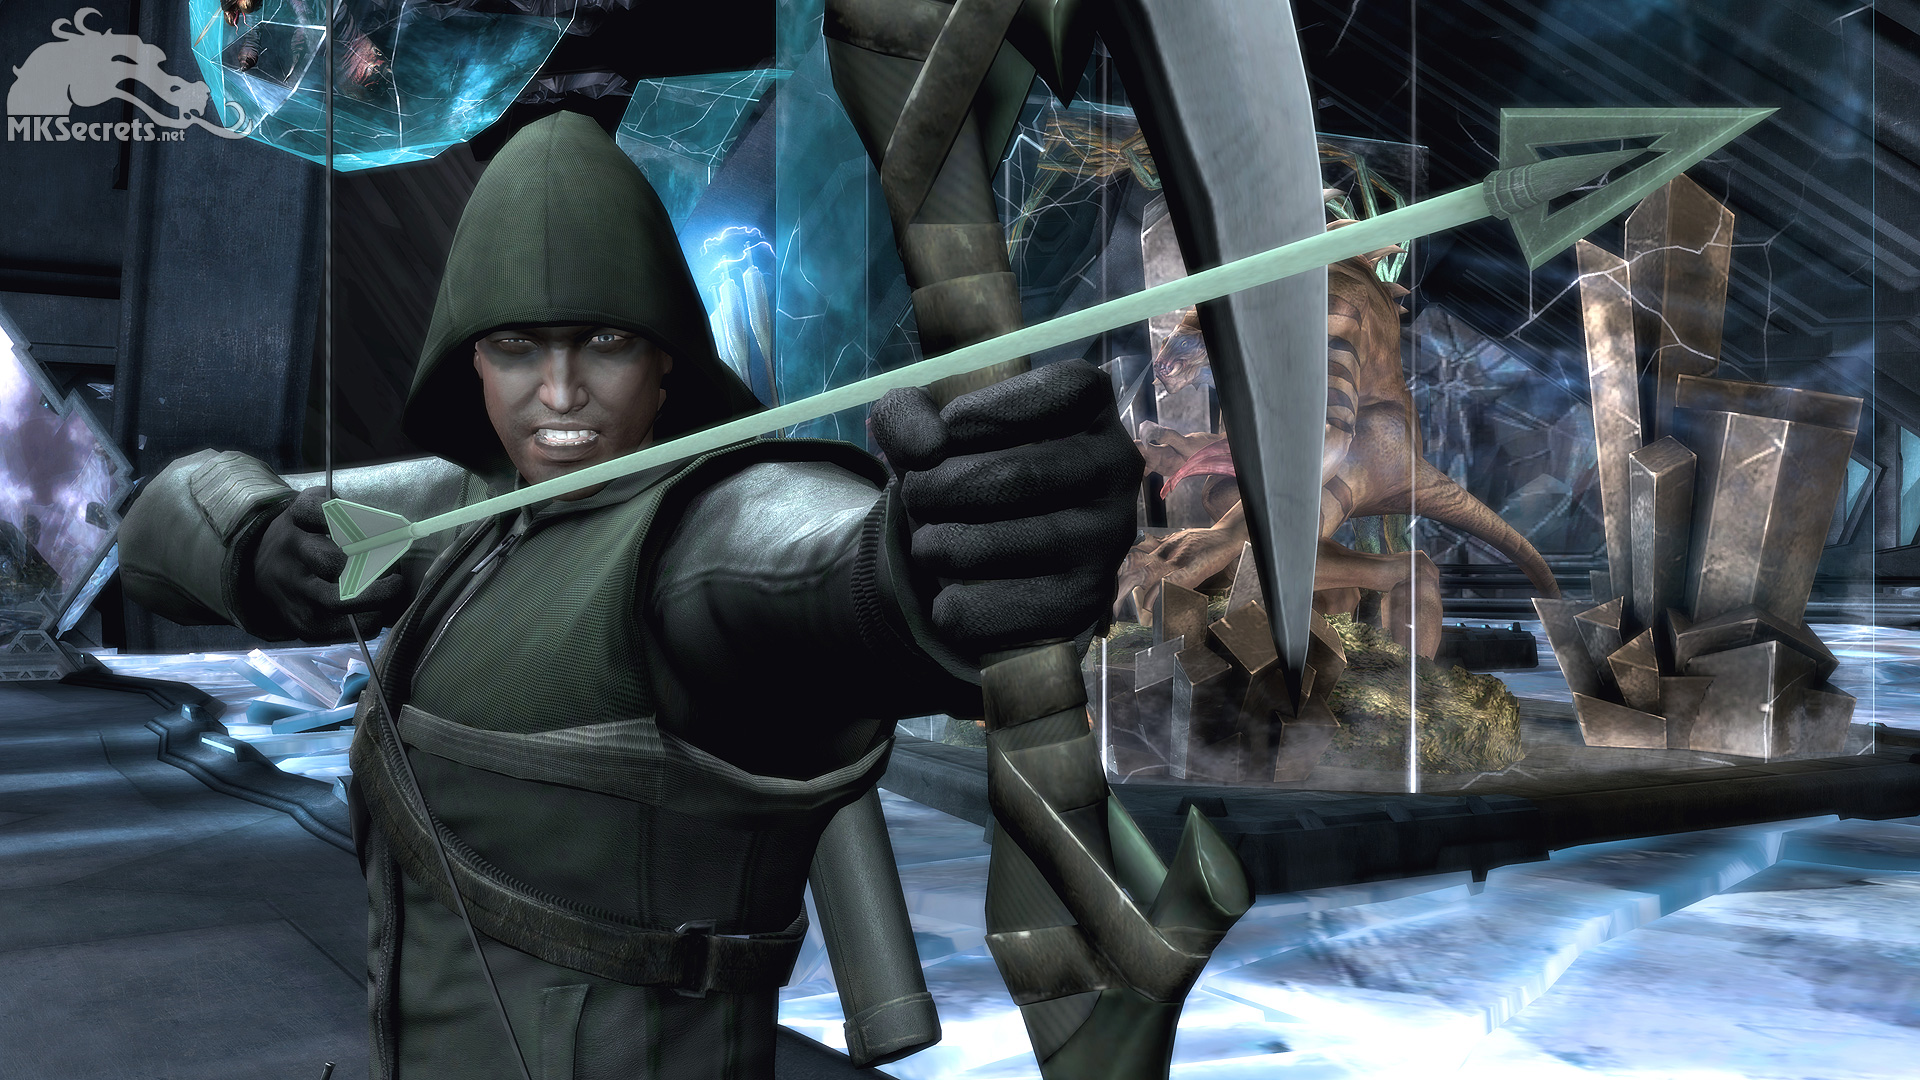 Injustice Gods Among Us Wallpaper Green Arrow 1920x1080